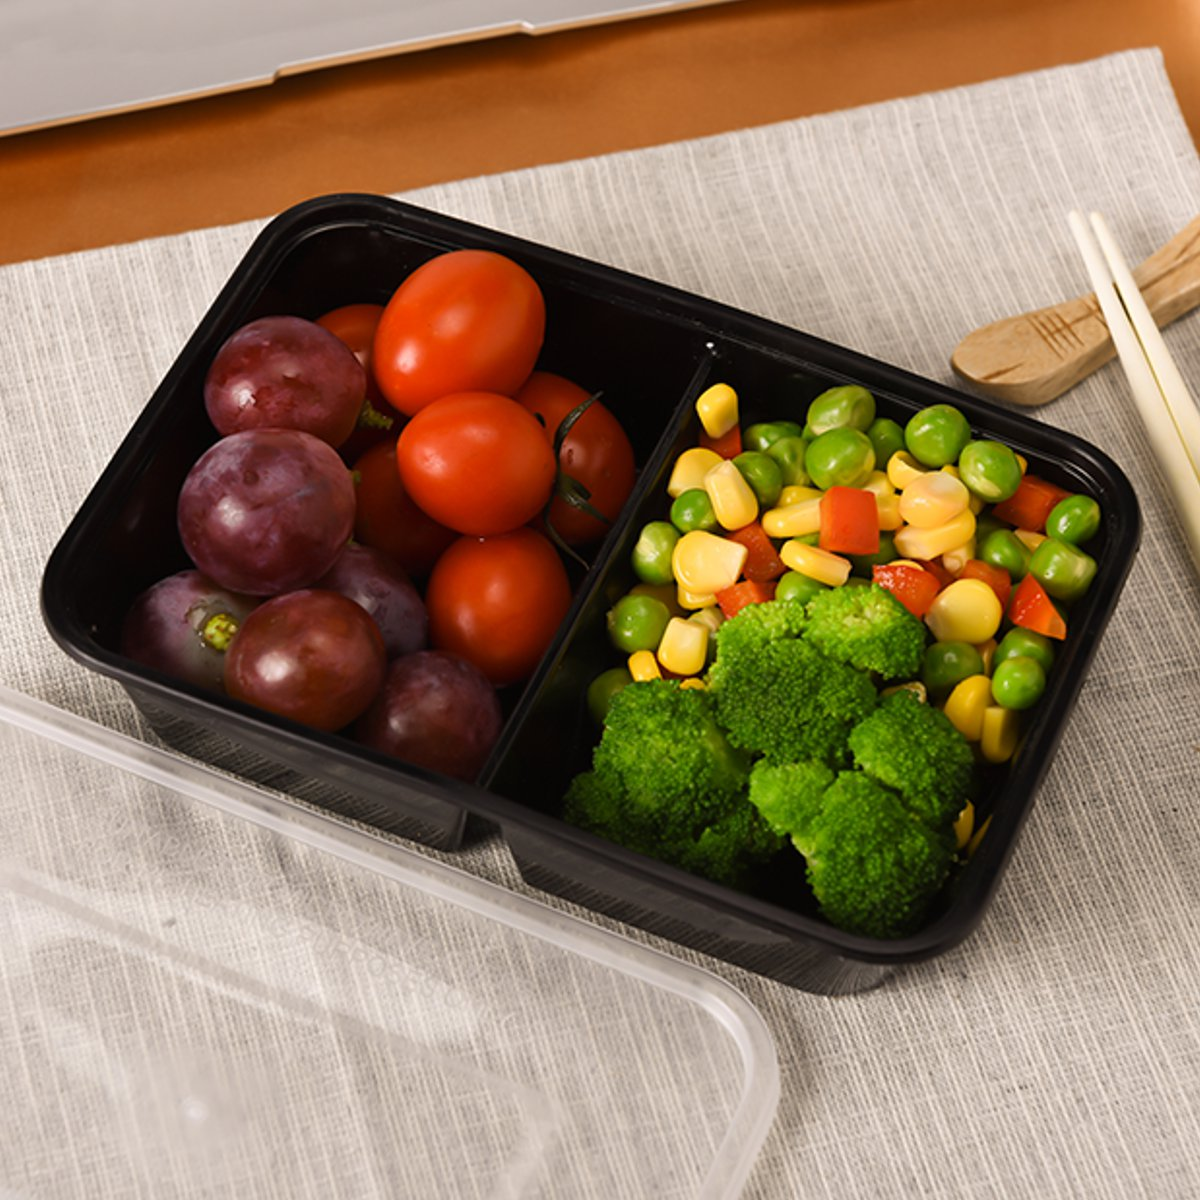 10Pcs Set Meal Food Containers Plastic Food Storage Microwave Reusable 2 Compartment Lunch Box 500ml Food Storage Containers Lunch Boxes     - title=